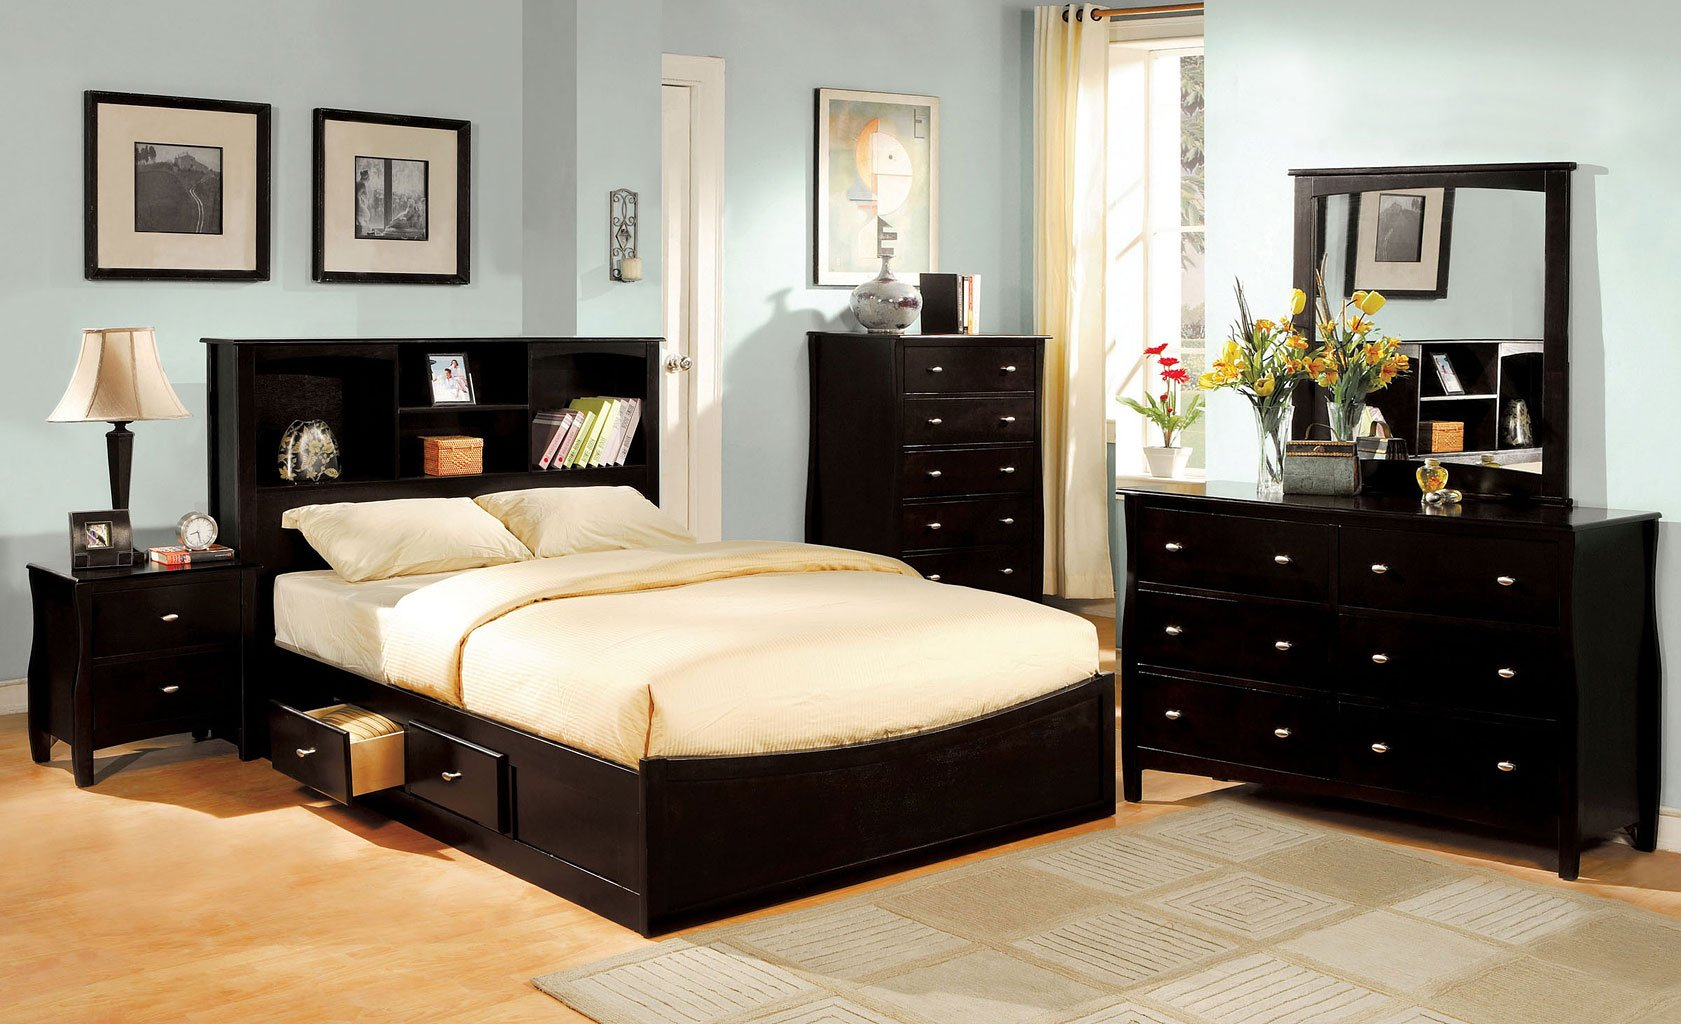 Milano Bedroom Set W/ Brooklyn Bed By Furniture Of America